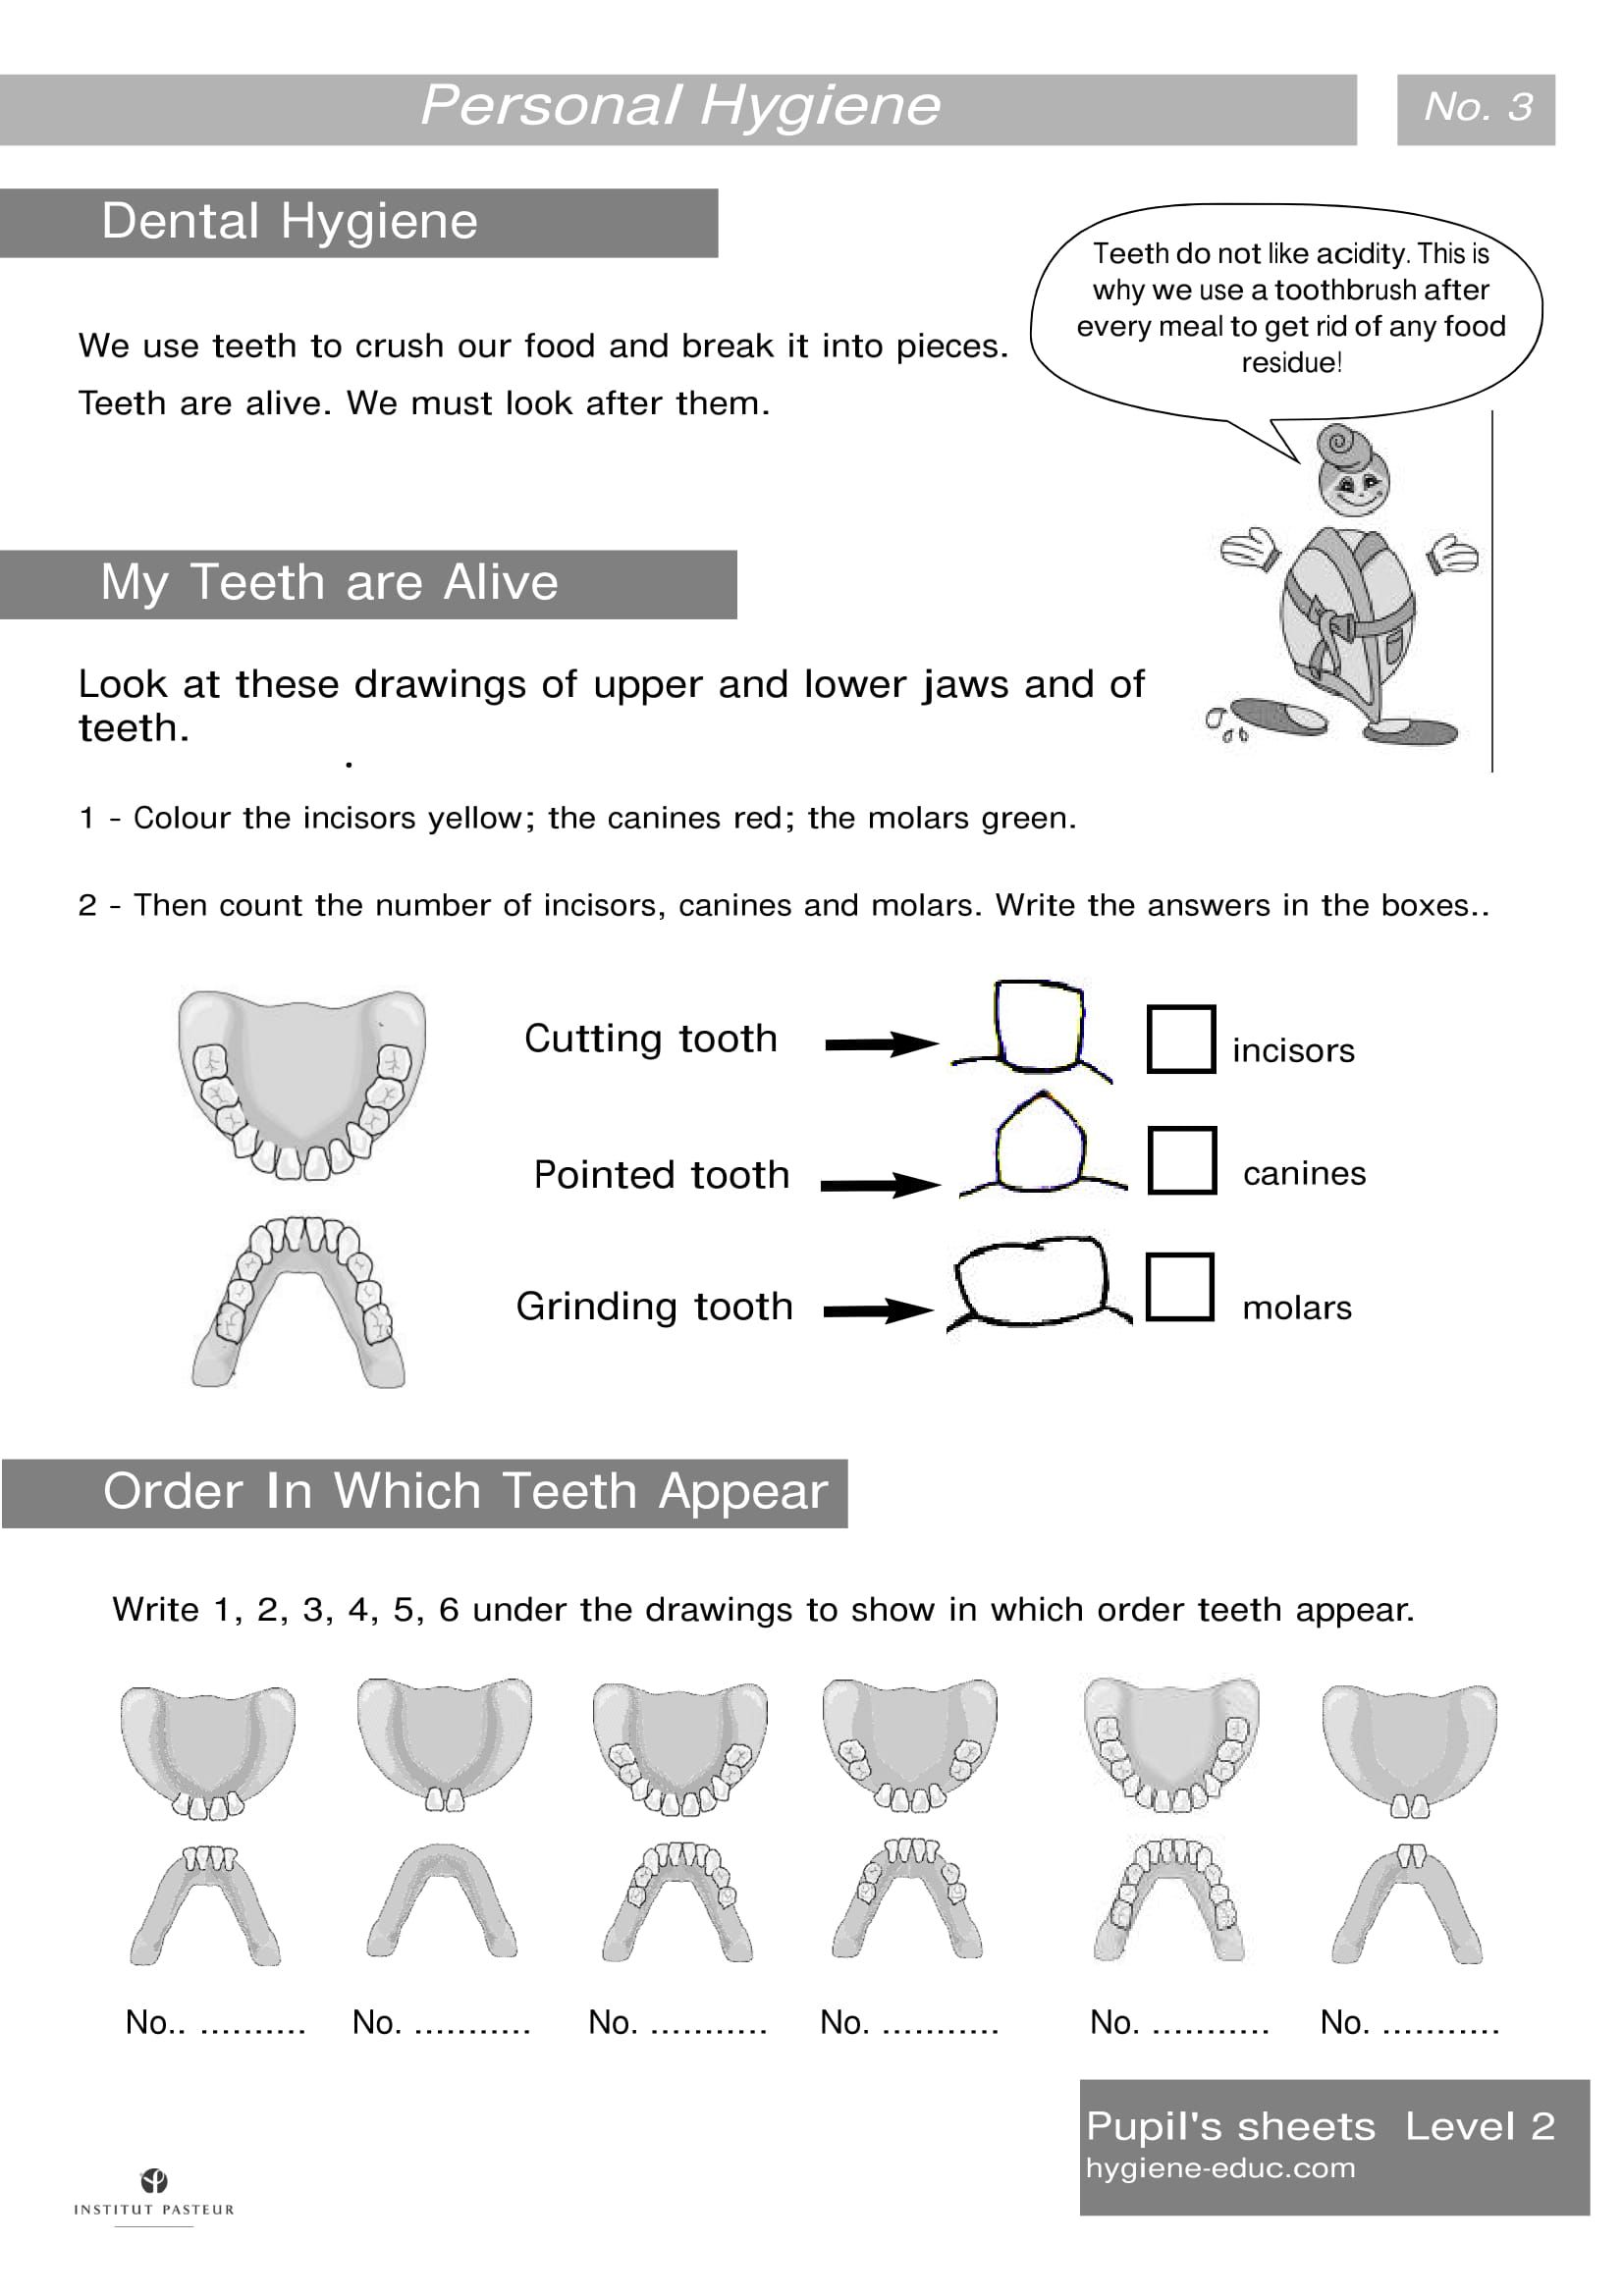 Personal Hygiene Worksheets Level 2 Dental Hygiene My